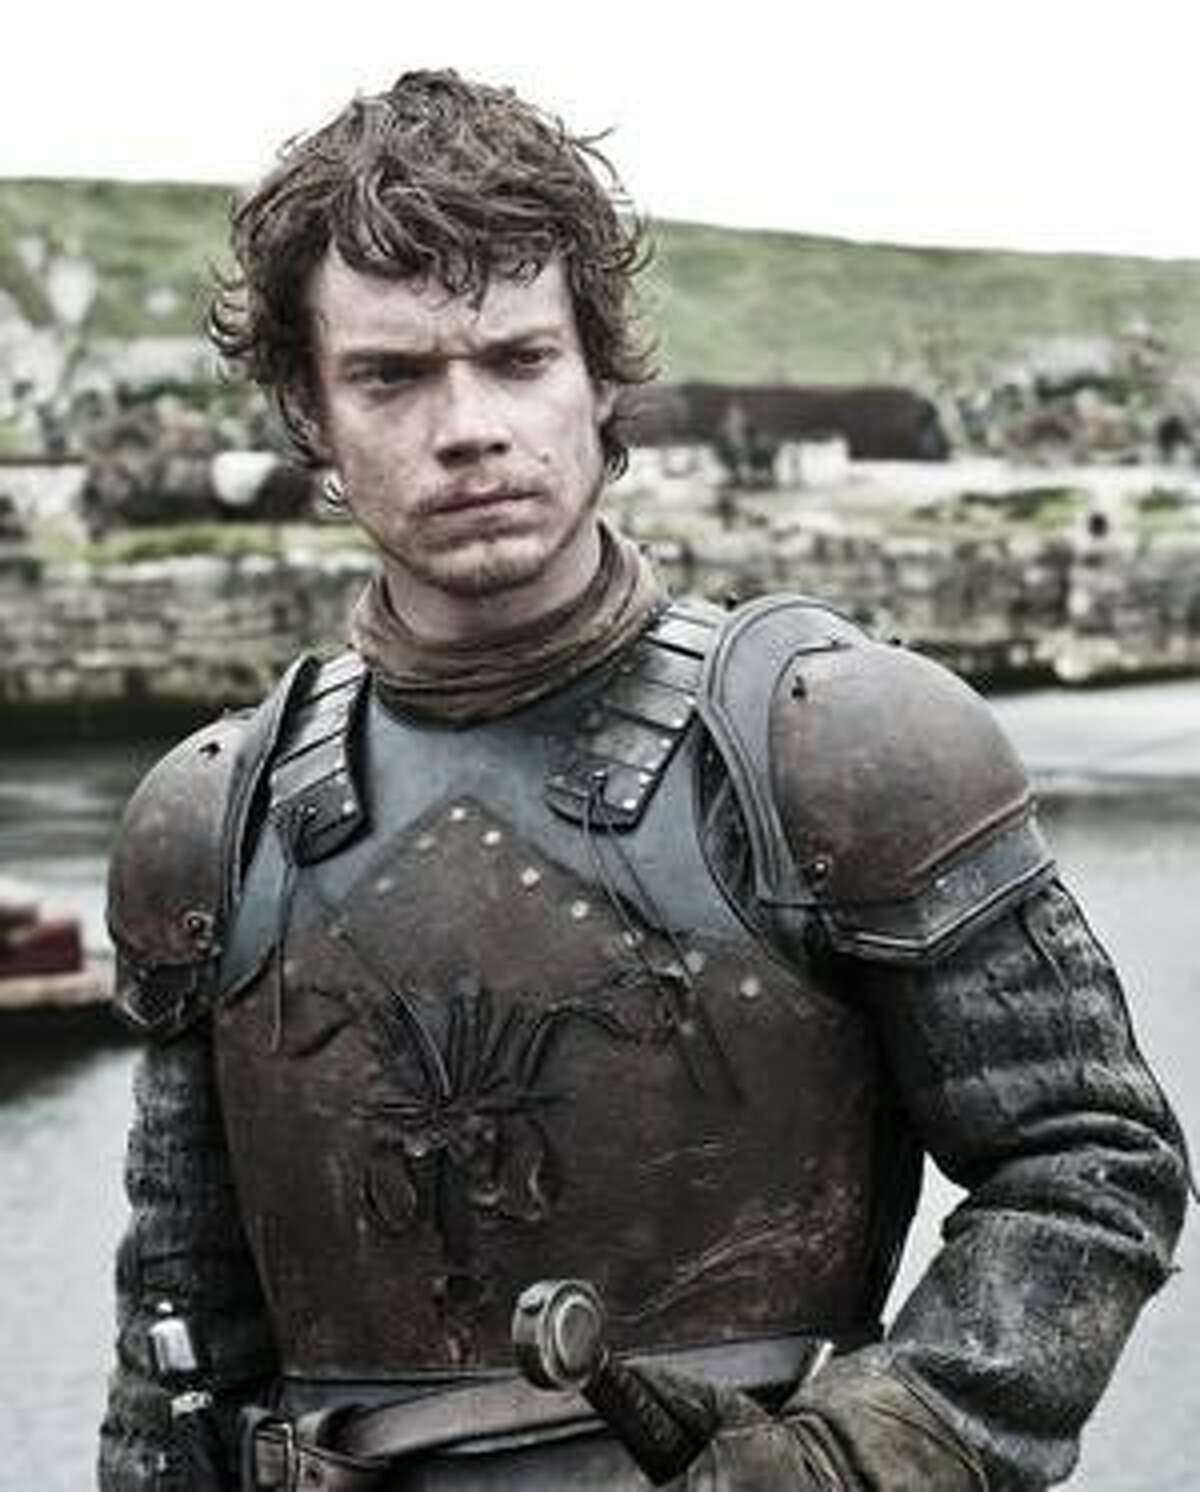 25. Theon Greyjoy(Last week No. 26):So Yara is being held captive by Uncle Euron, which allows Theon to jump ship from the last spot. There's a good chance he'll martyr himself in some way before this story is done. But I don't see him doing much beyond that.